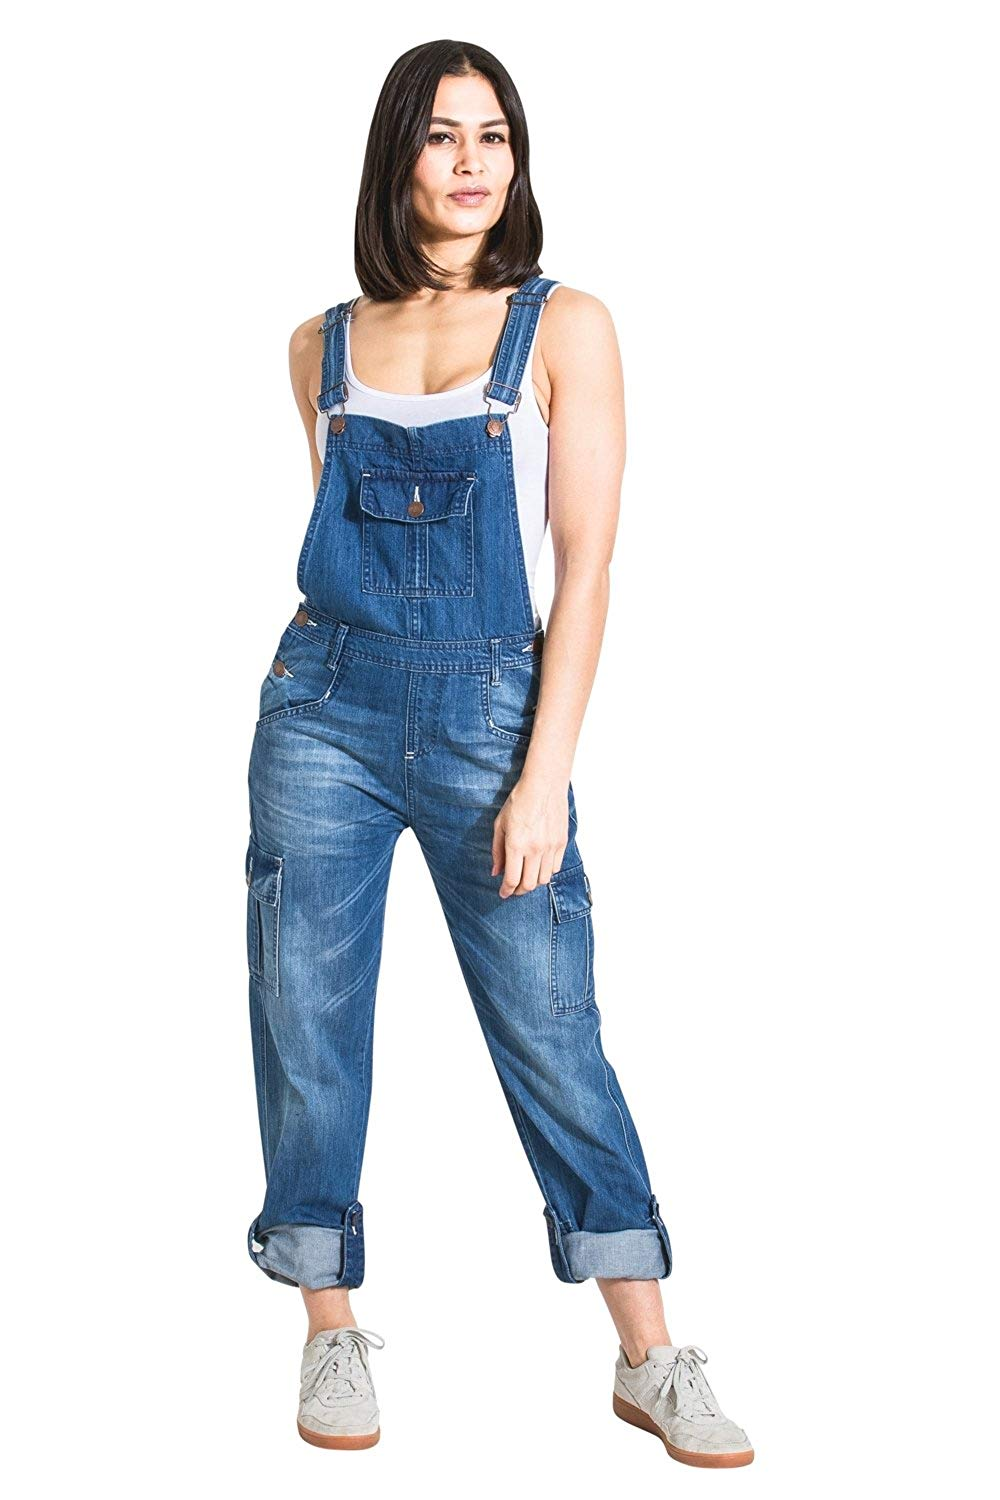 800673ad8fbf Get Quotations · USKEES Womens Denim Bib-Overalls - Faded Blue Relaxed fit  Roll-up Leg Dungarees